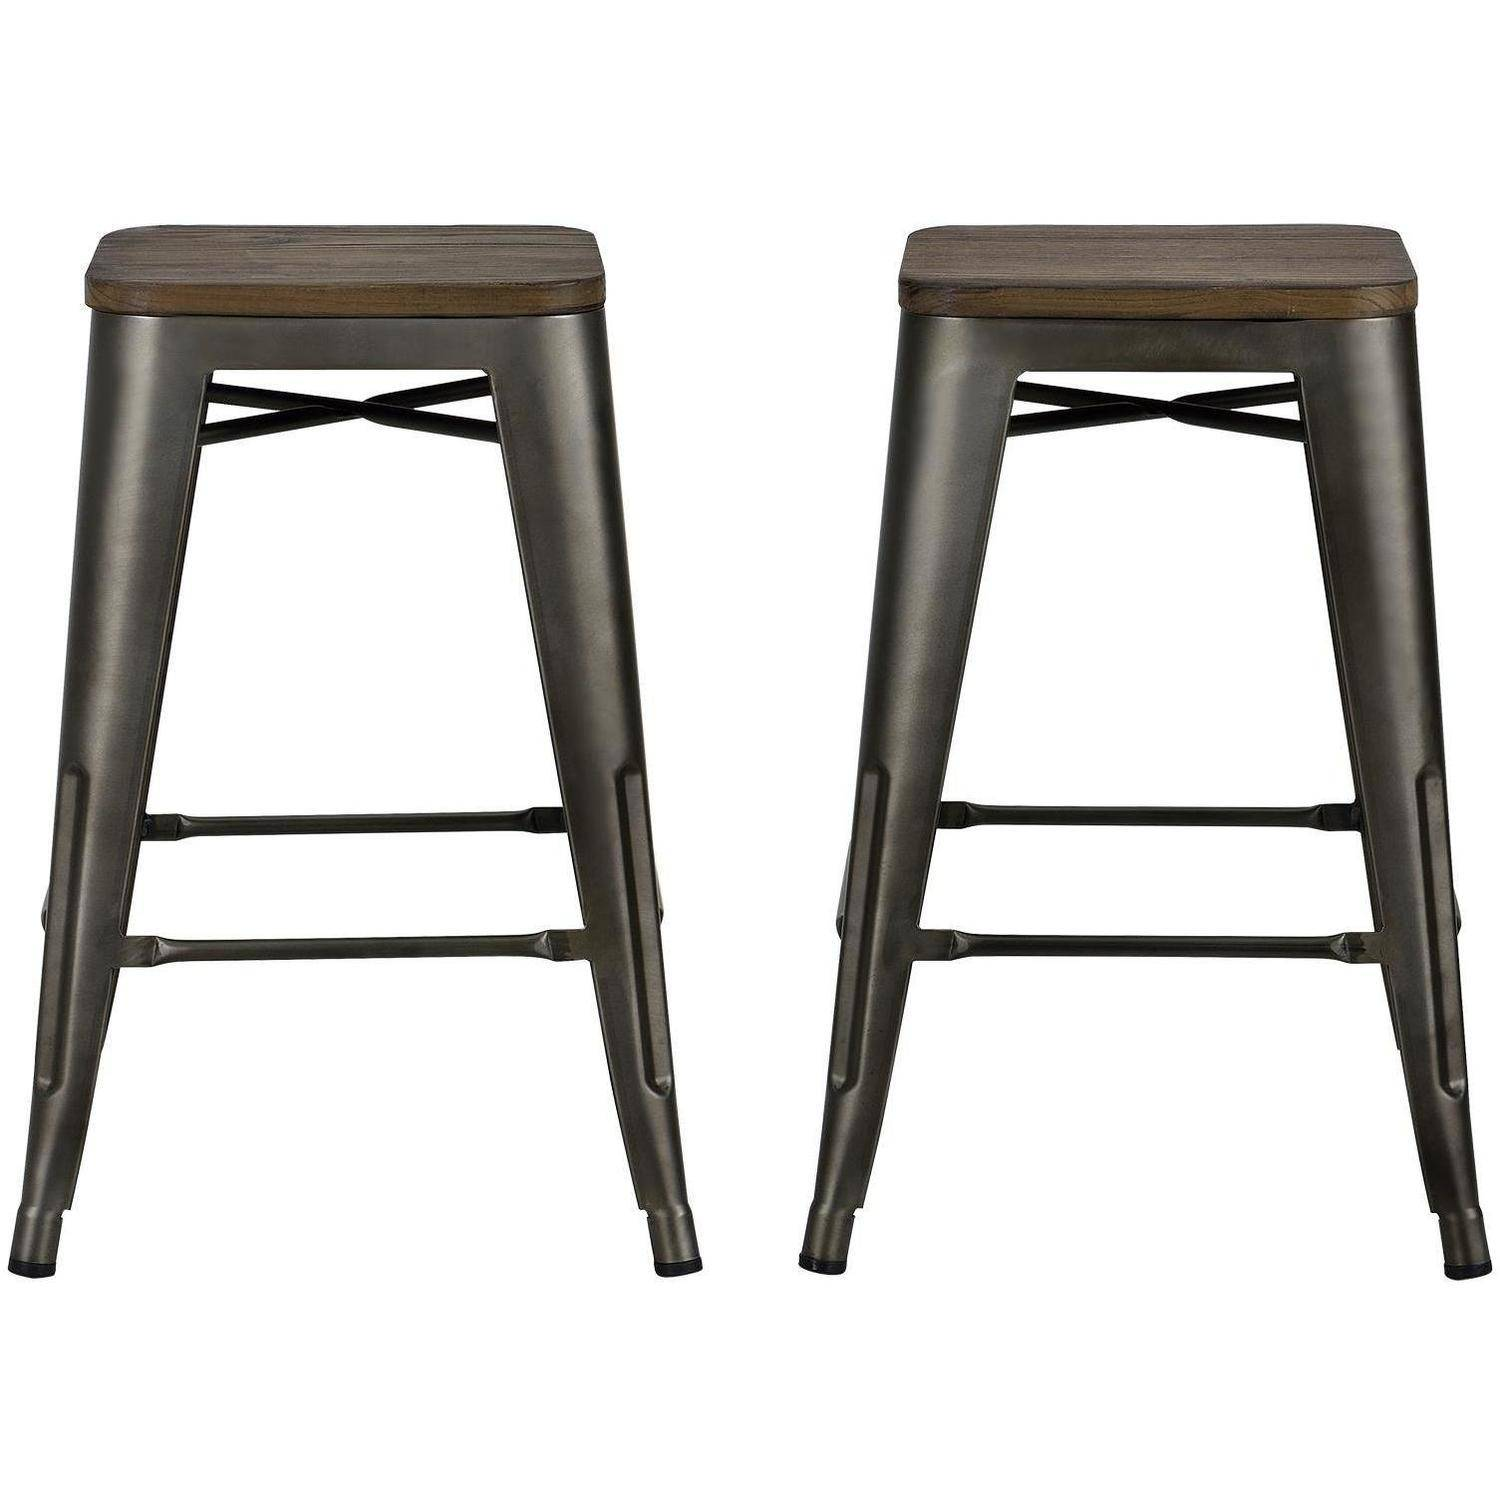 Dhp Fusion 24 Metal Backless Counter Stool With Wood Seat Set Of 2